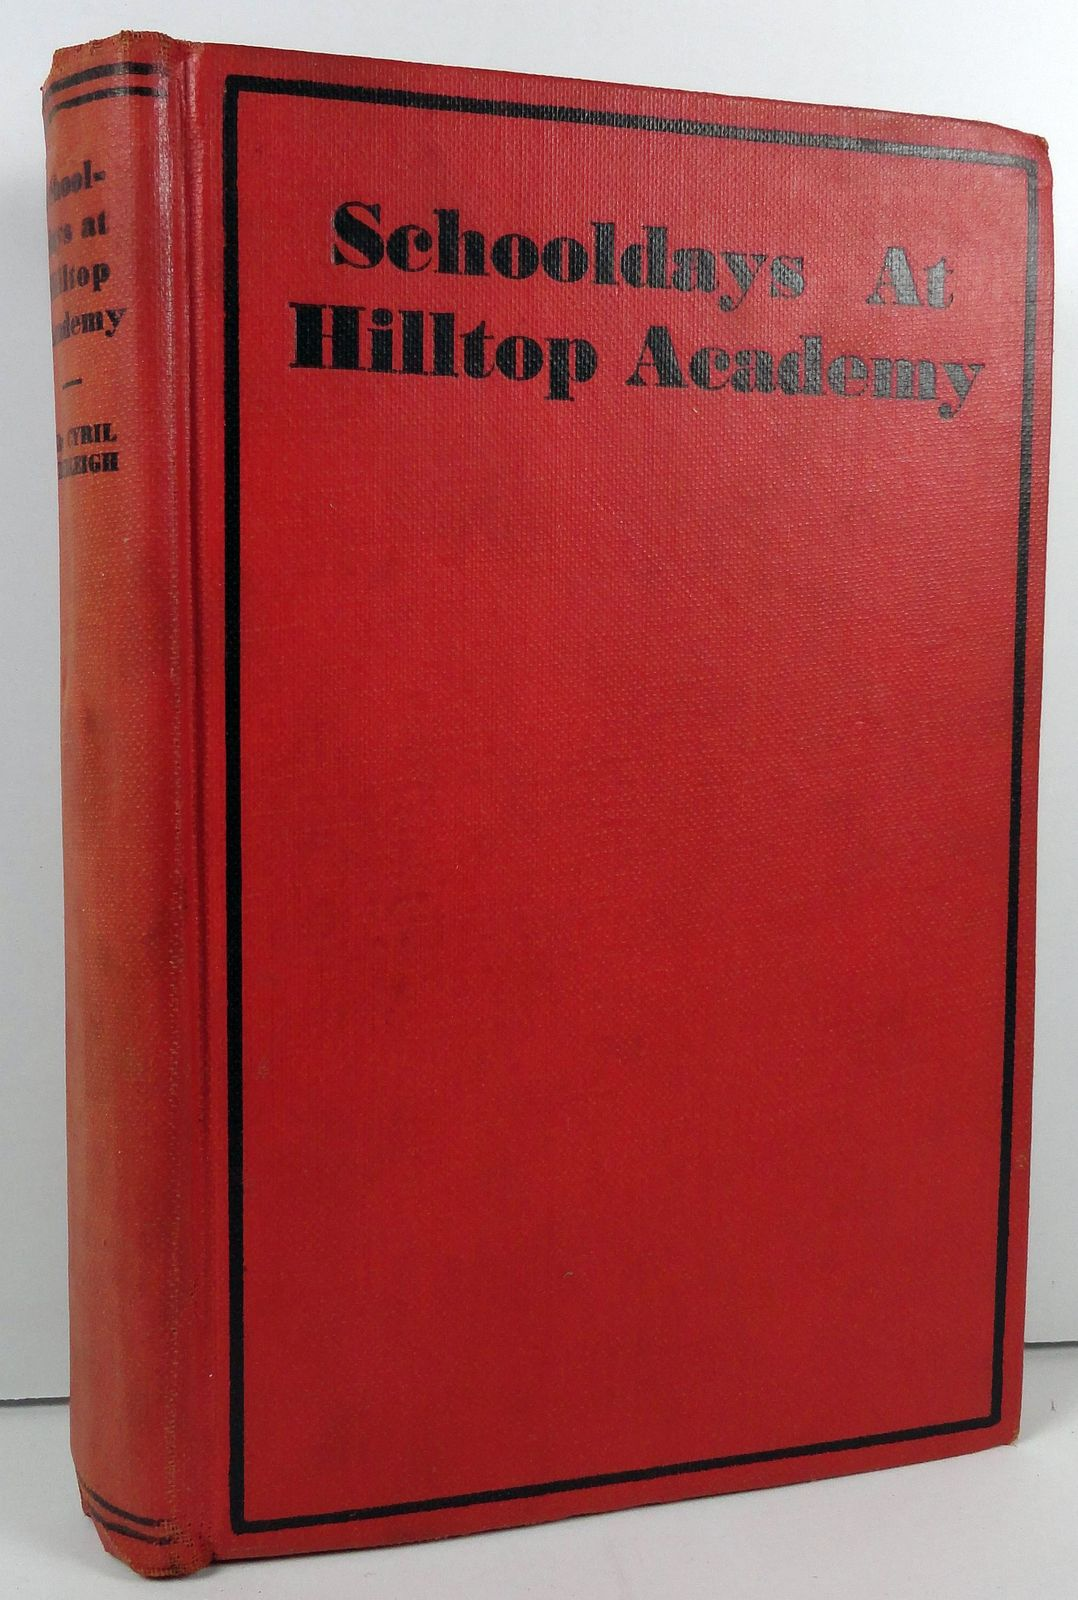 Schooldays at Hilltop Academy by Cyril Burleigh 1931